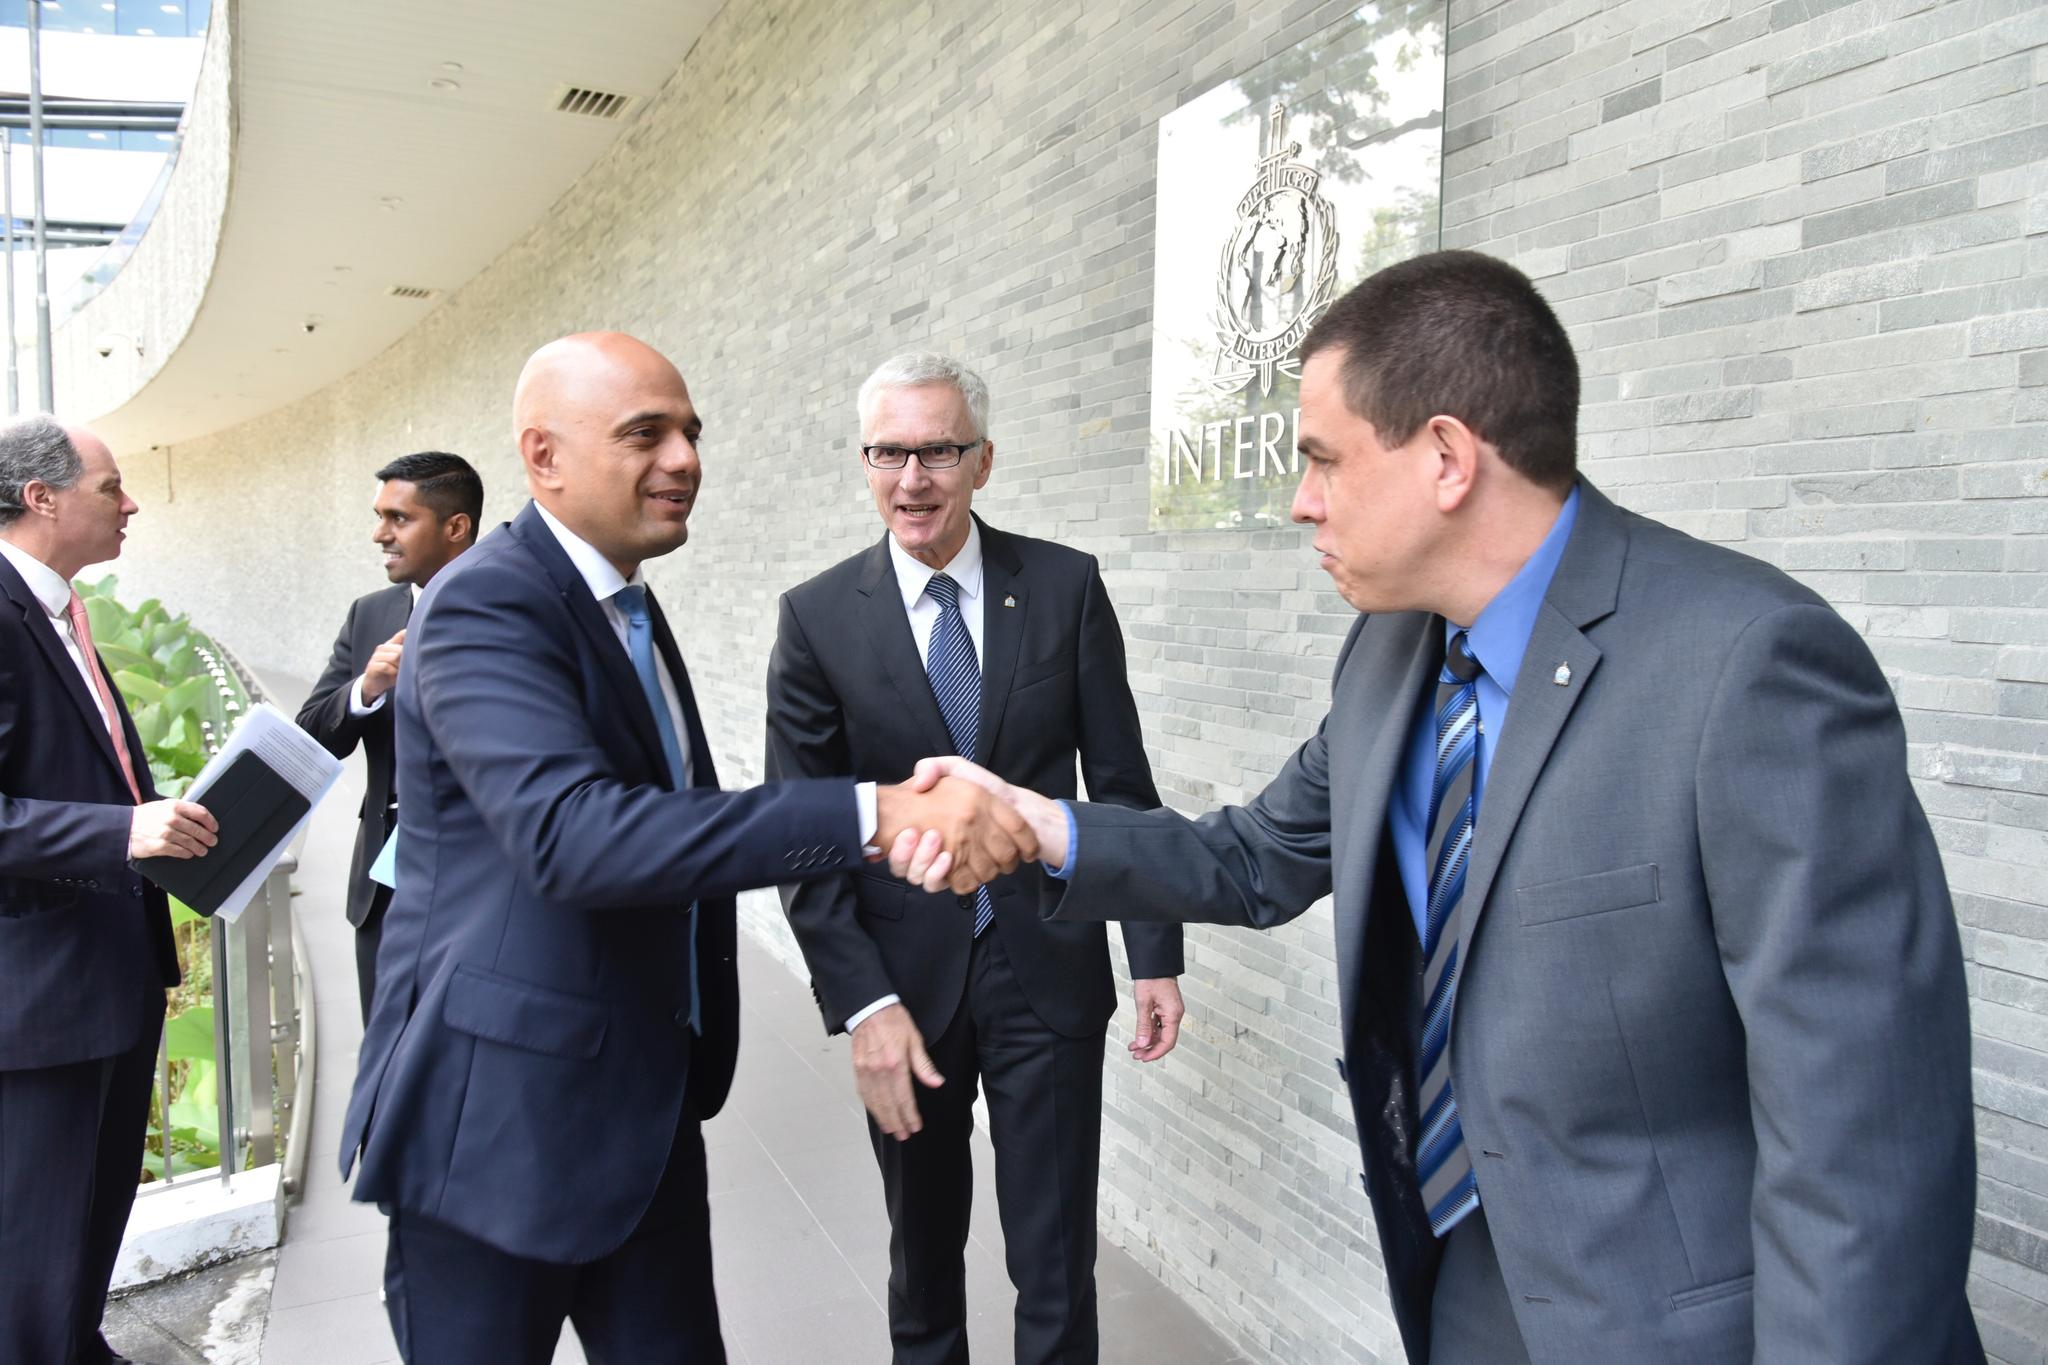 Home Secretary Javid also met with Silvino Schlickmann Jr., INTERPOL Executive Director of Technology and Innovation.